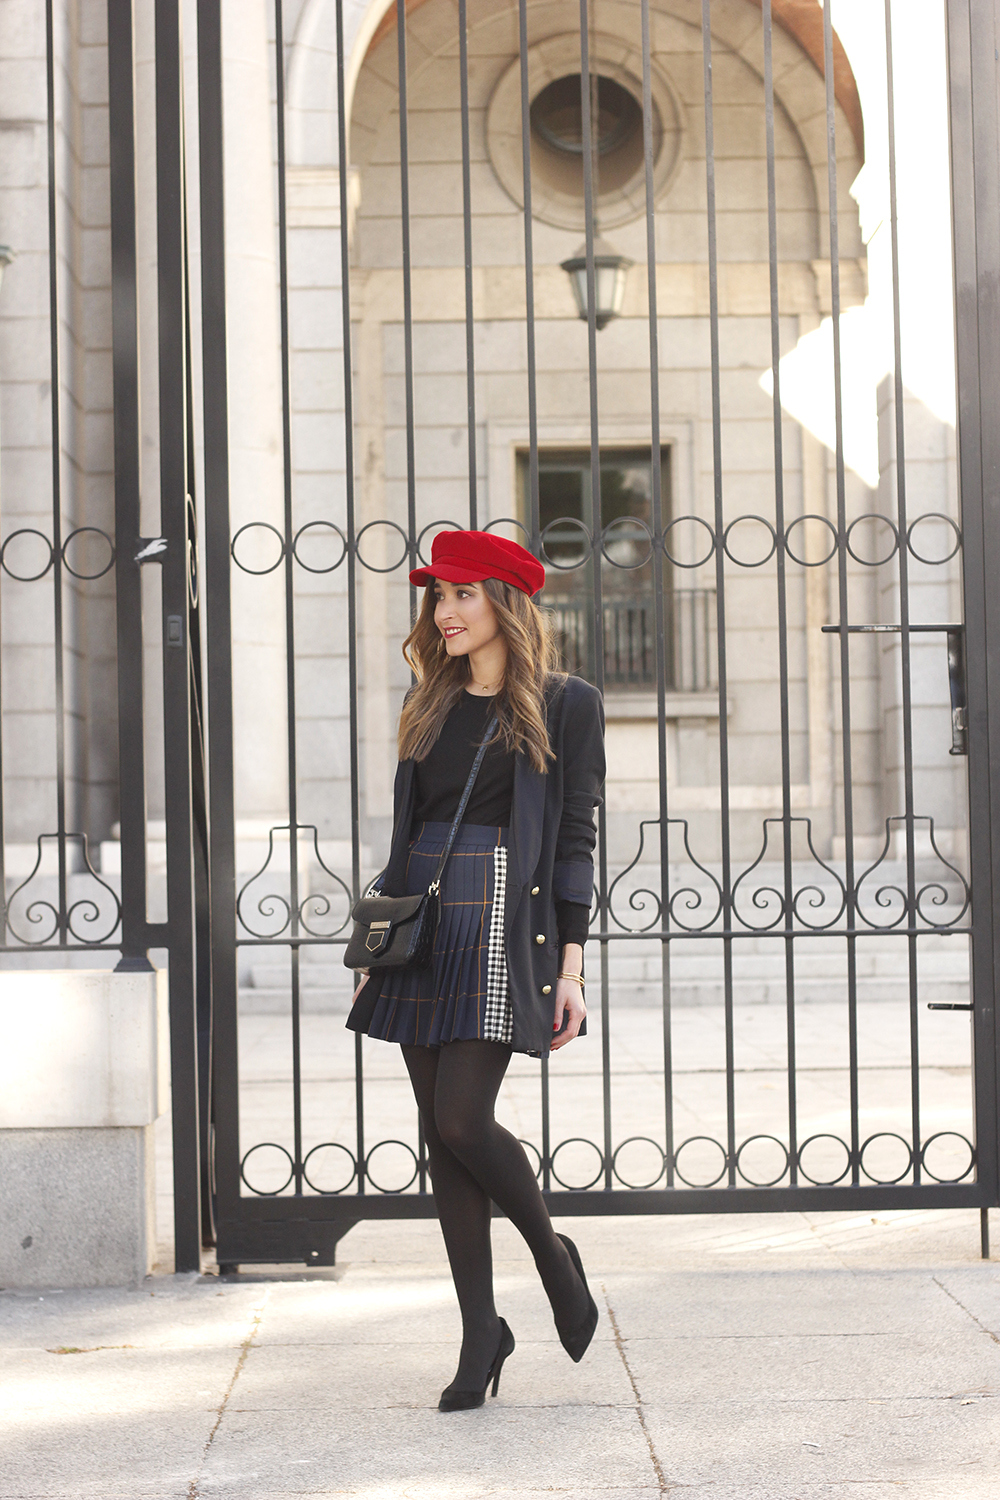 pleated skirt Scottish print Vichy print red navy cap givenchy bag winter outfit falda de tablas look invierno 201802